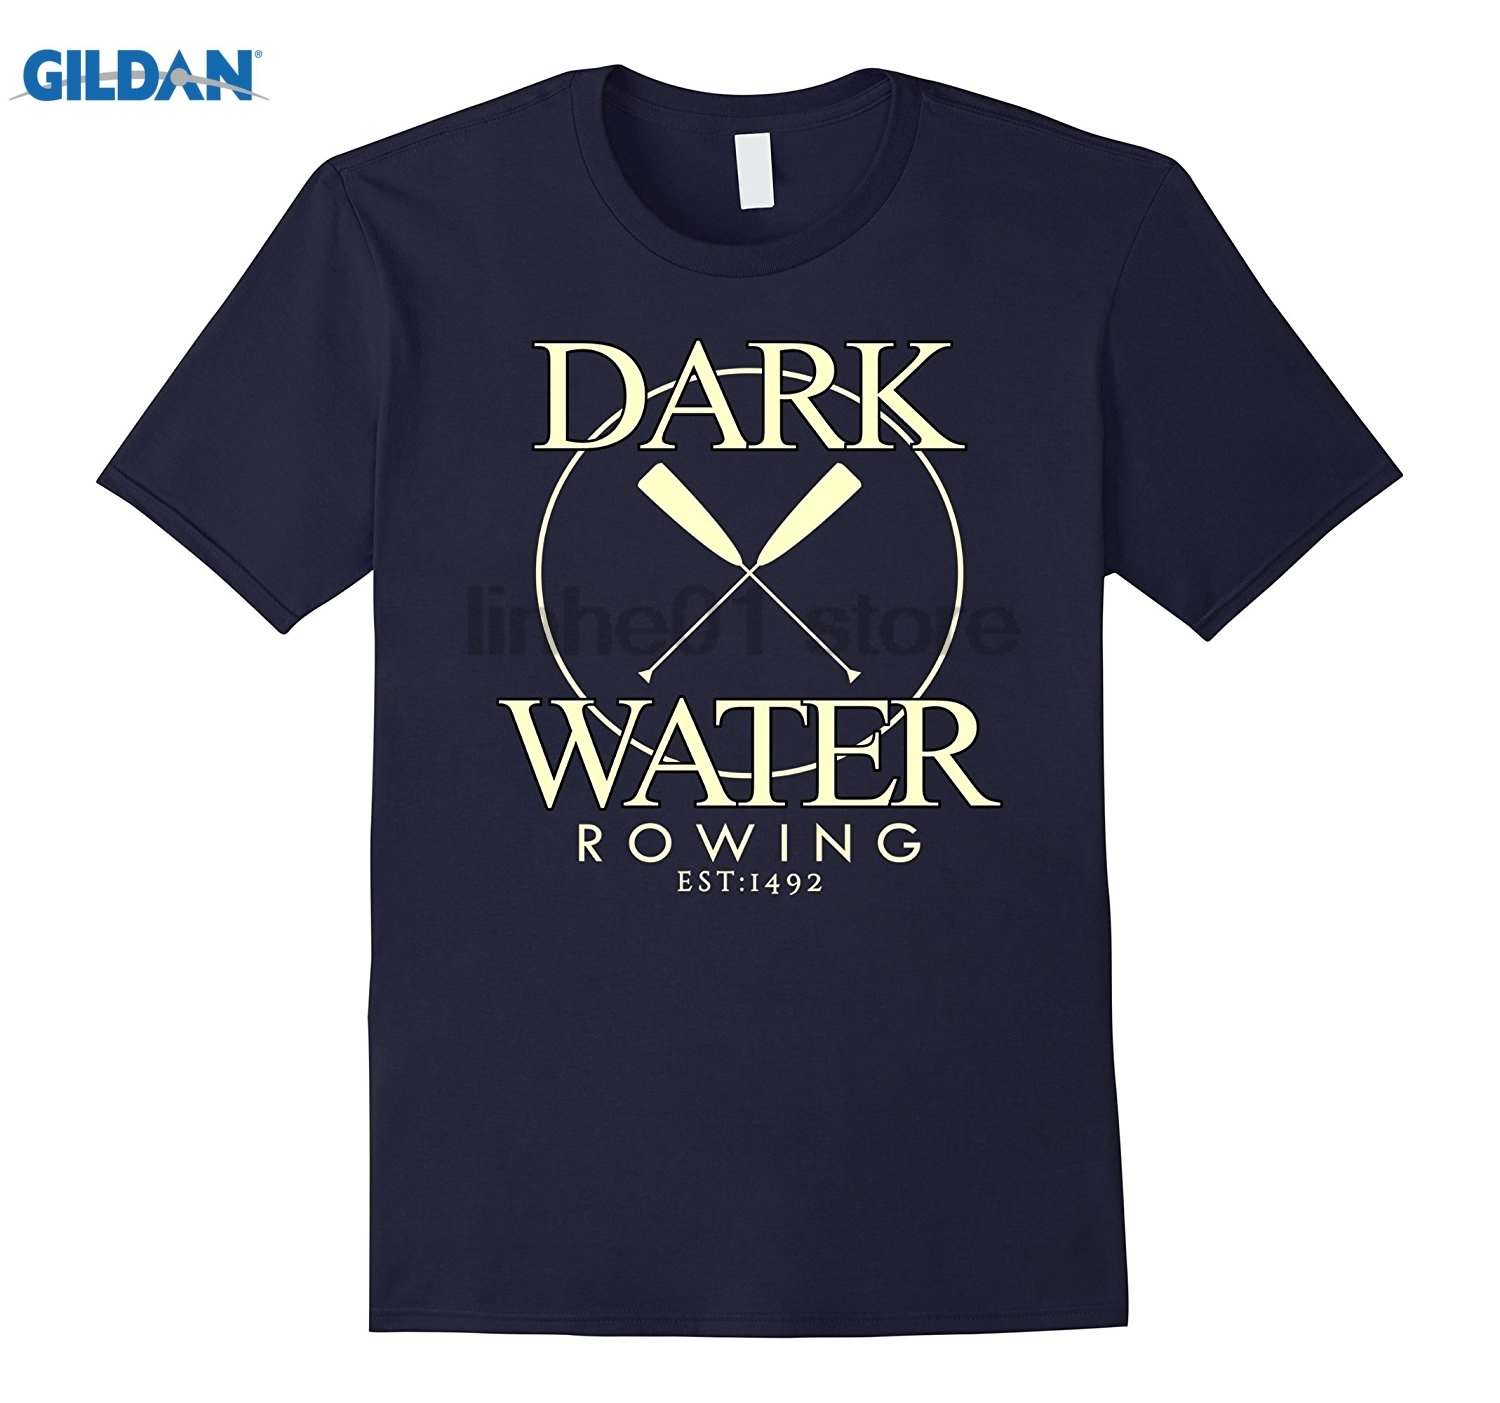 GILDAN Dark Water Rowing Club 1492 Row Enthusiast Athlete T Shirt glasses Womens T-shirt Hot Womens T-shirt